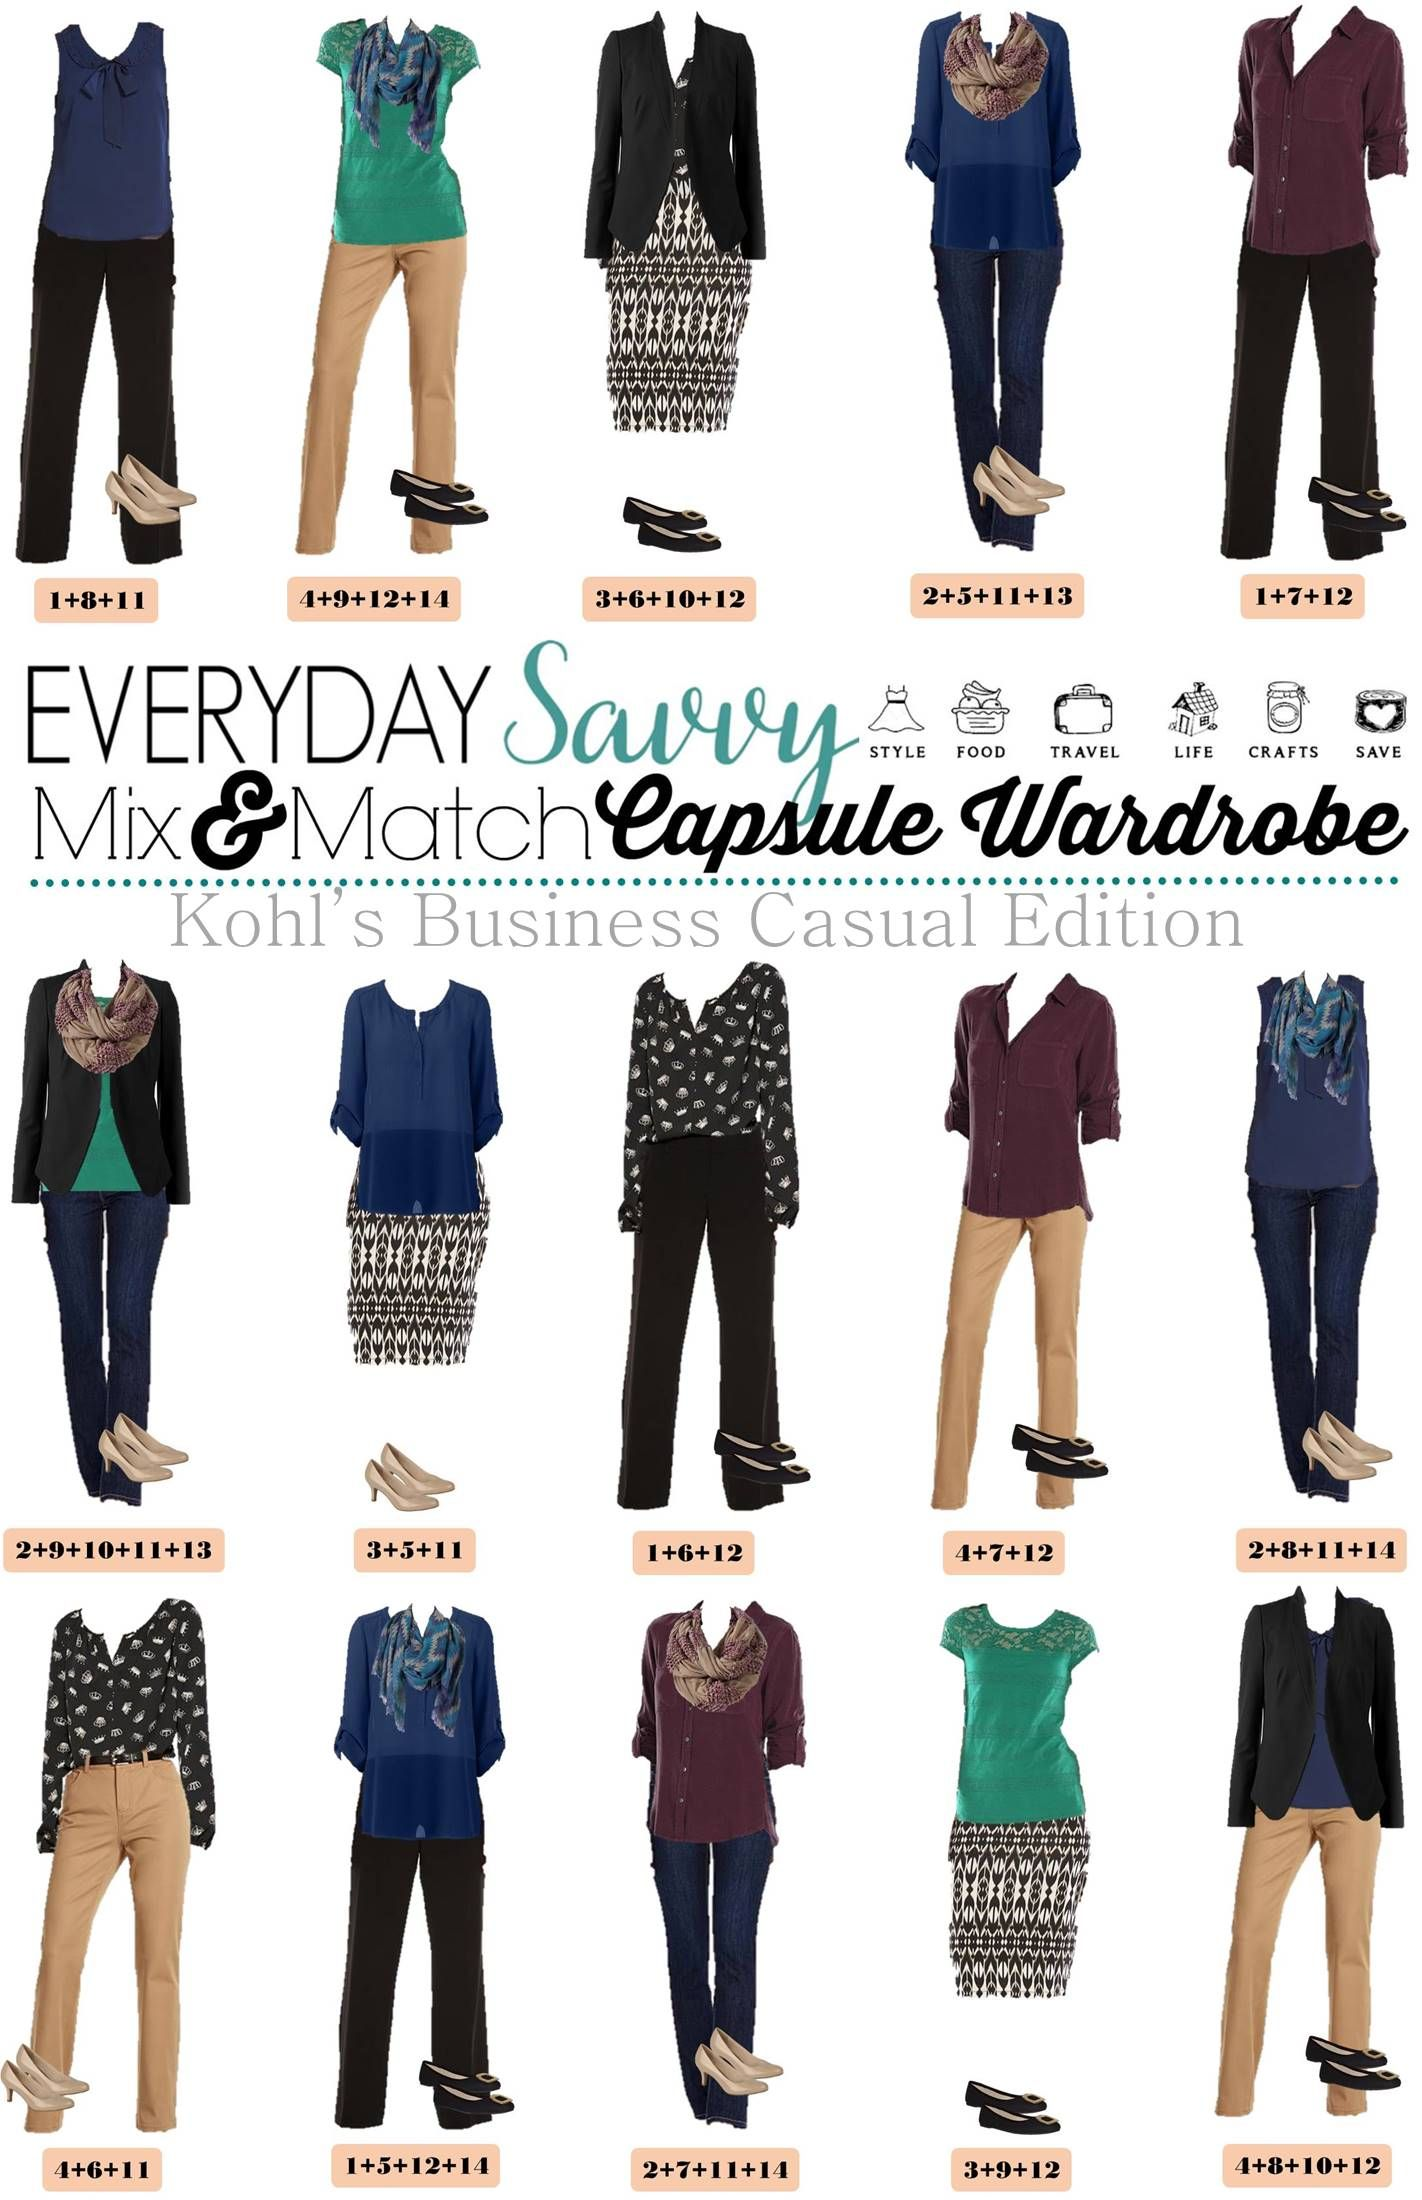 fall business casual for women 2014 hairstyles kohls ...